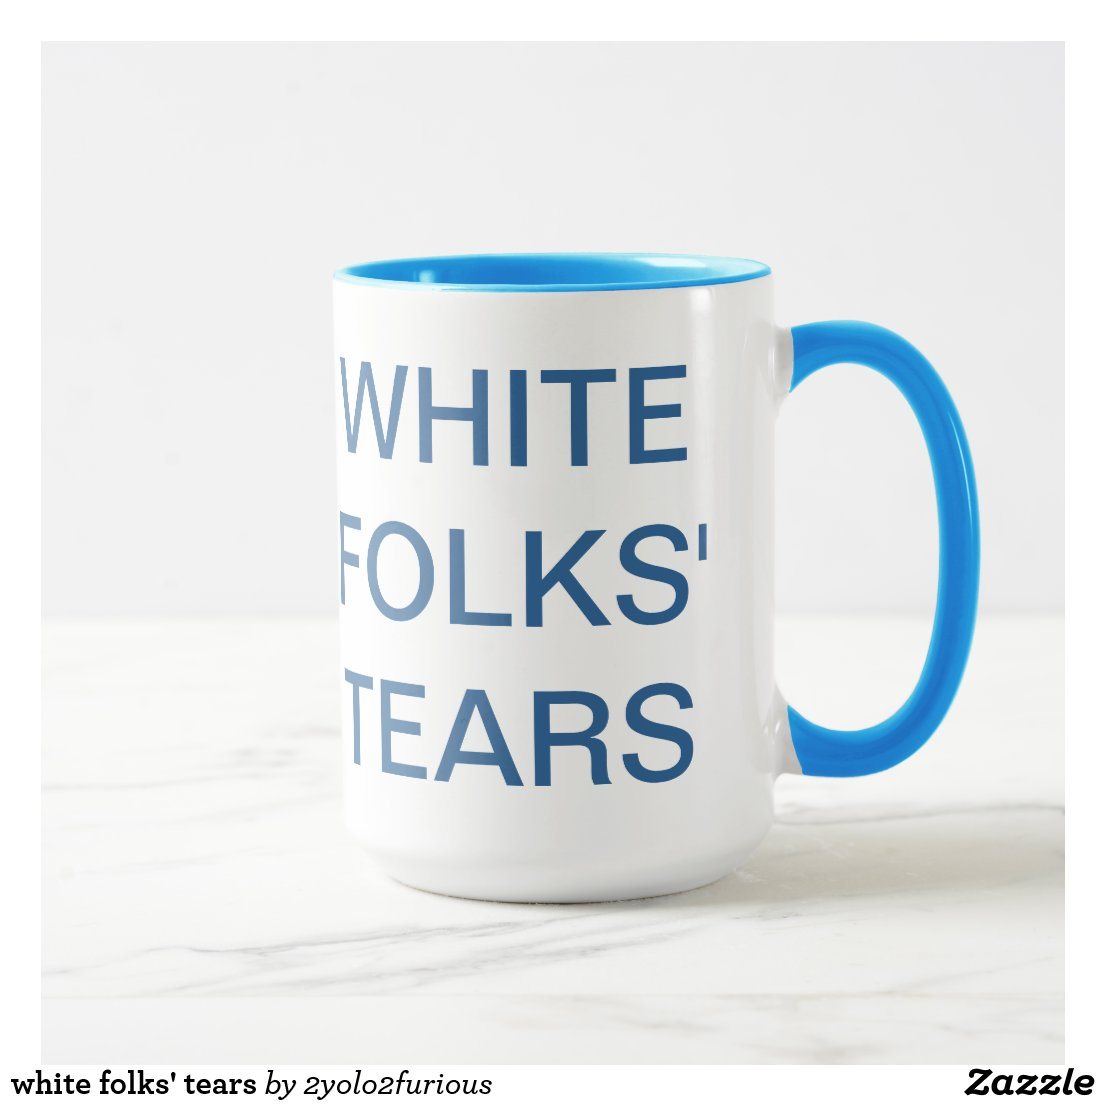 white folks' tears mug